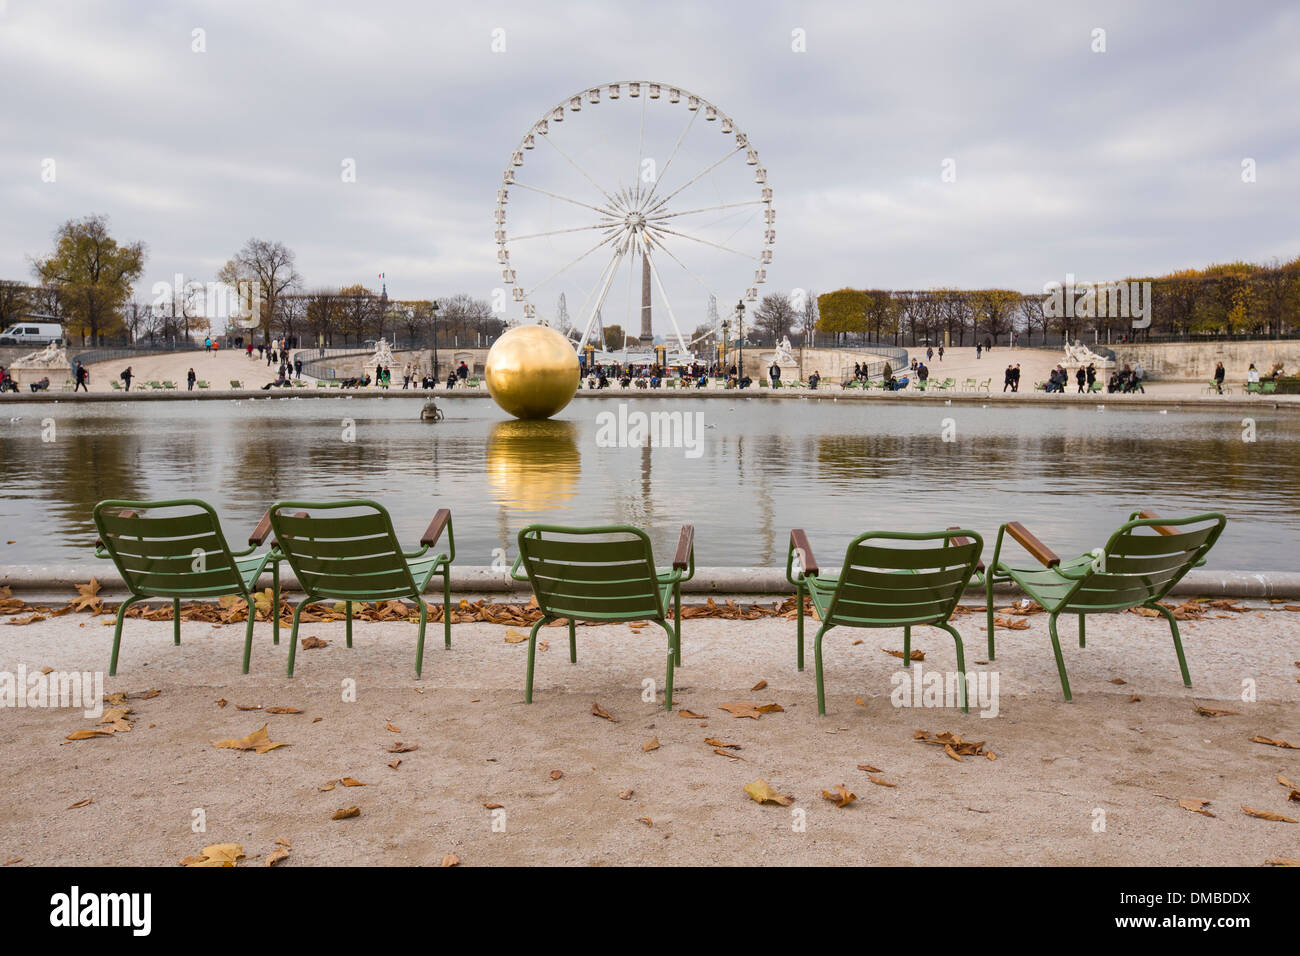 The Bassin Octagonal in the Jardins Des Tuileries featuring the sculpture The Golden Sphere. - Stock Image